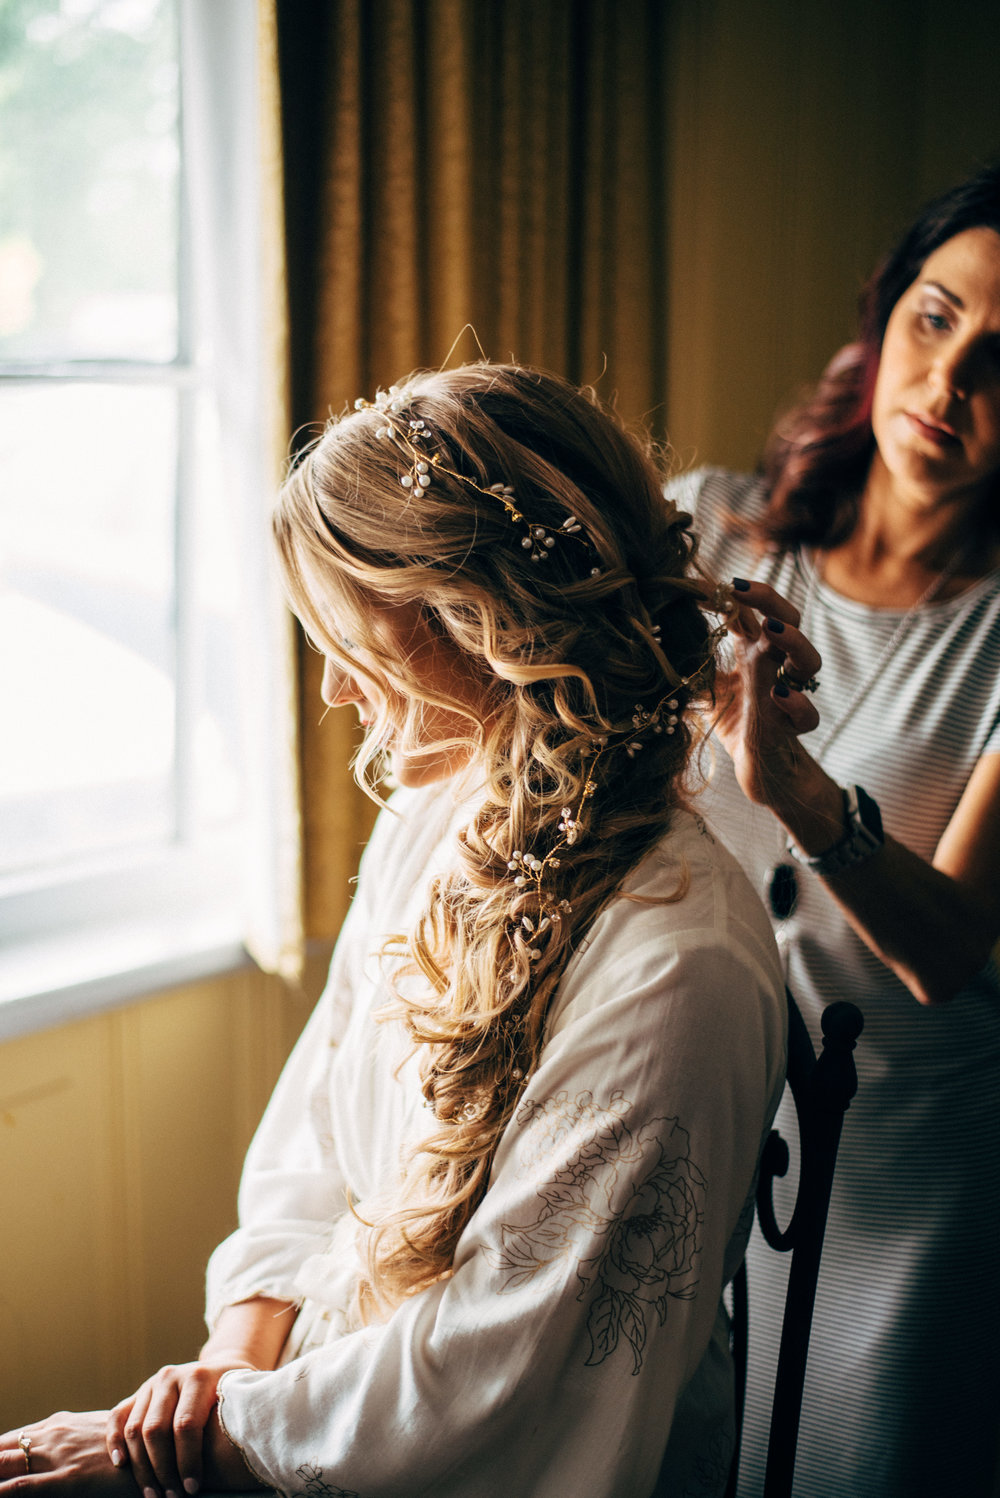 hairdresser putting final touches on bride's mermaid hair before the wedding